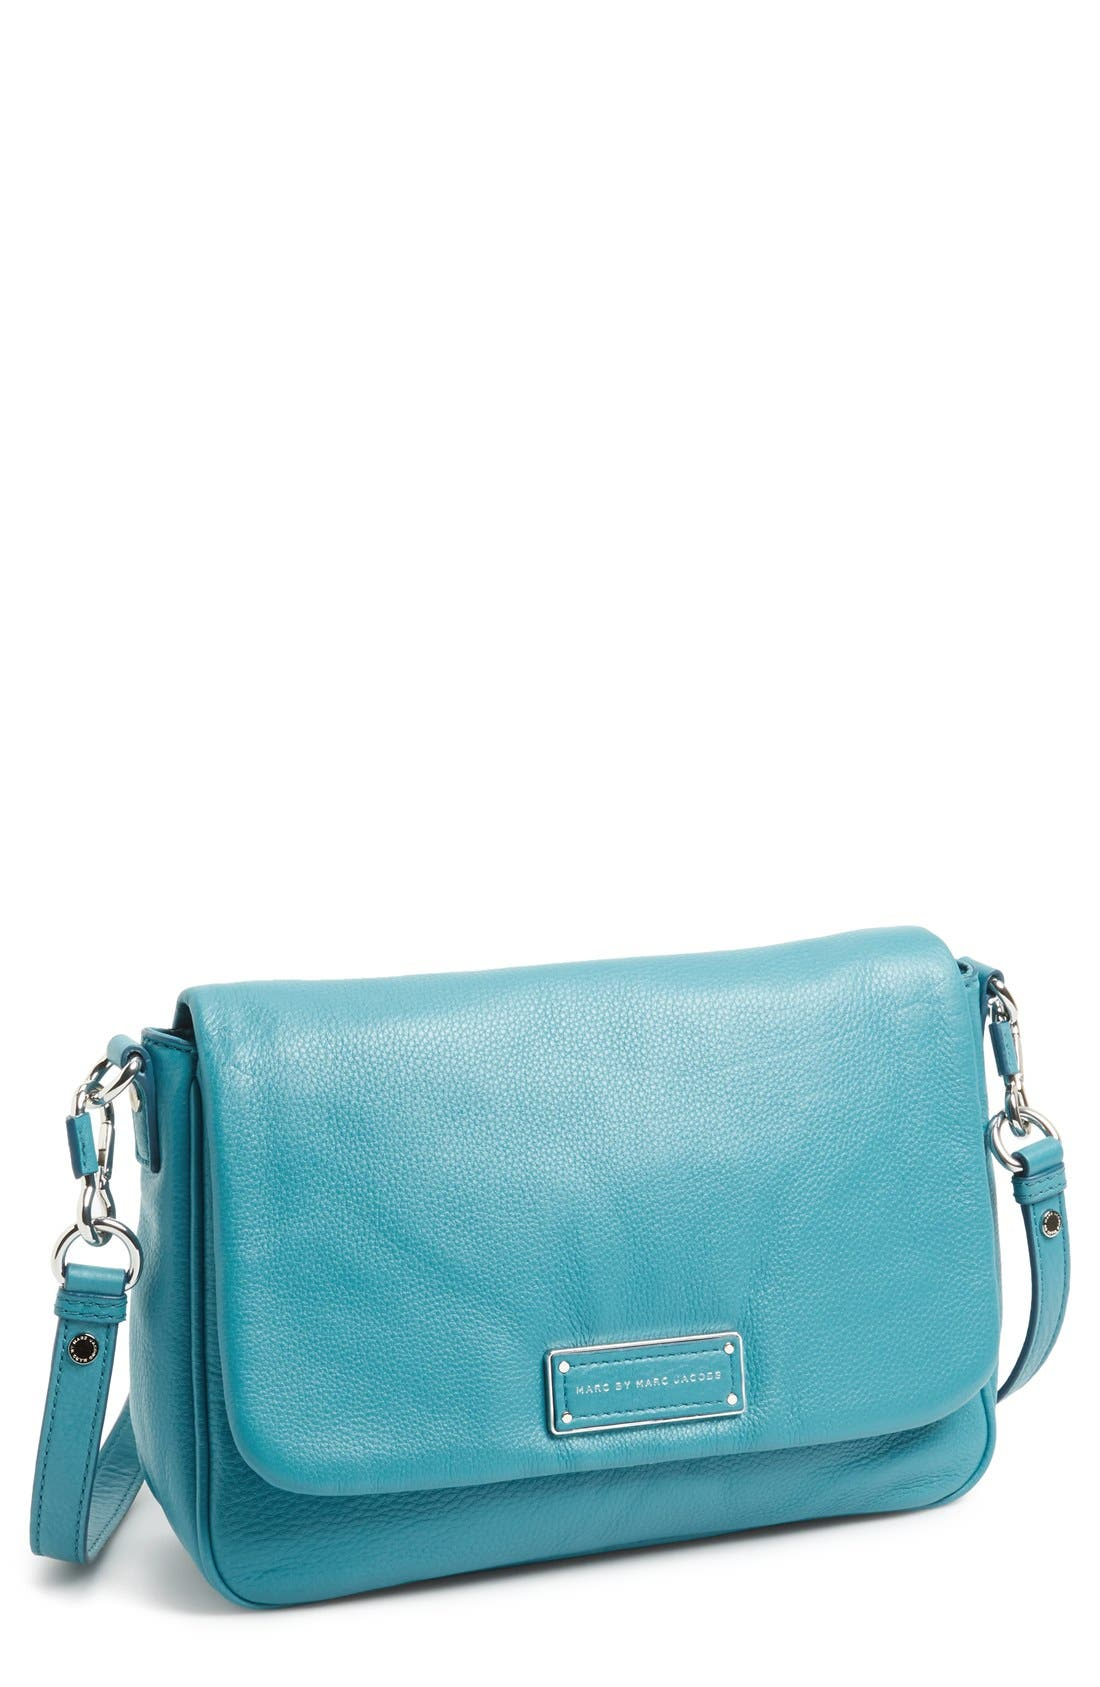 Alternate Image 1 Selected - MARC BY MARC JACOBS 'Too Hot to Handle - Lea' Crossbody Bag